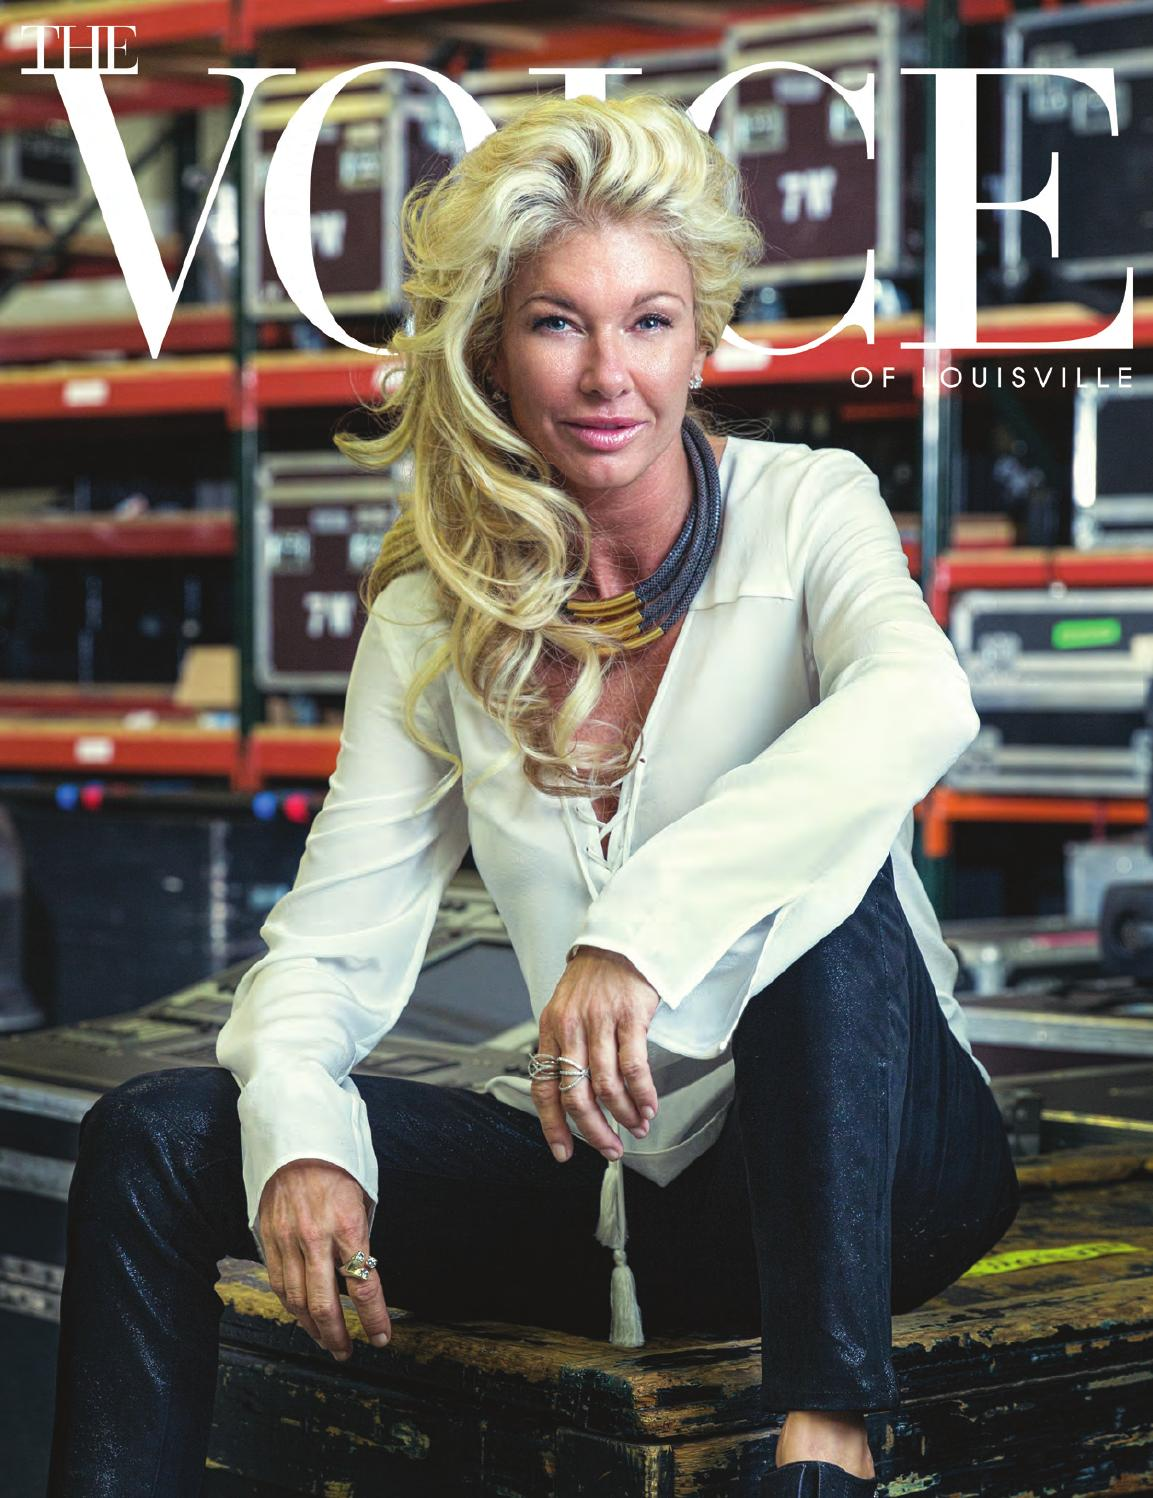 The Voice Of Louisville By Red Pin Media Issuu